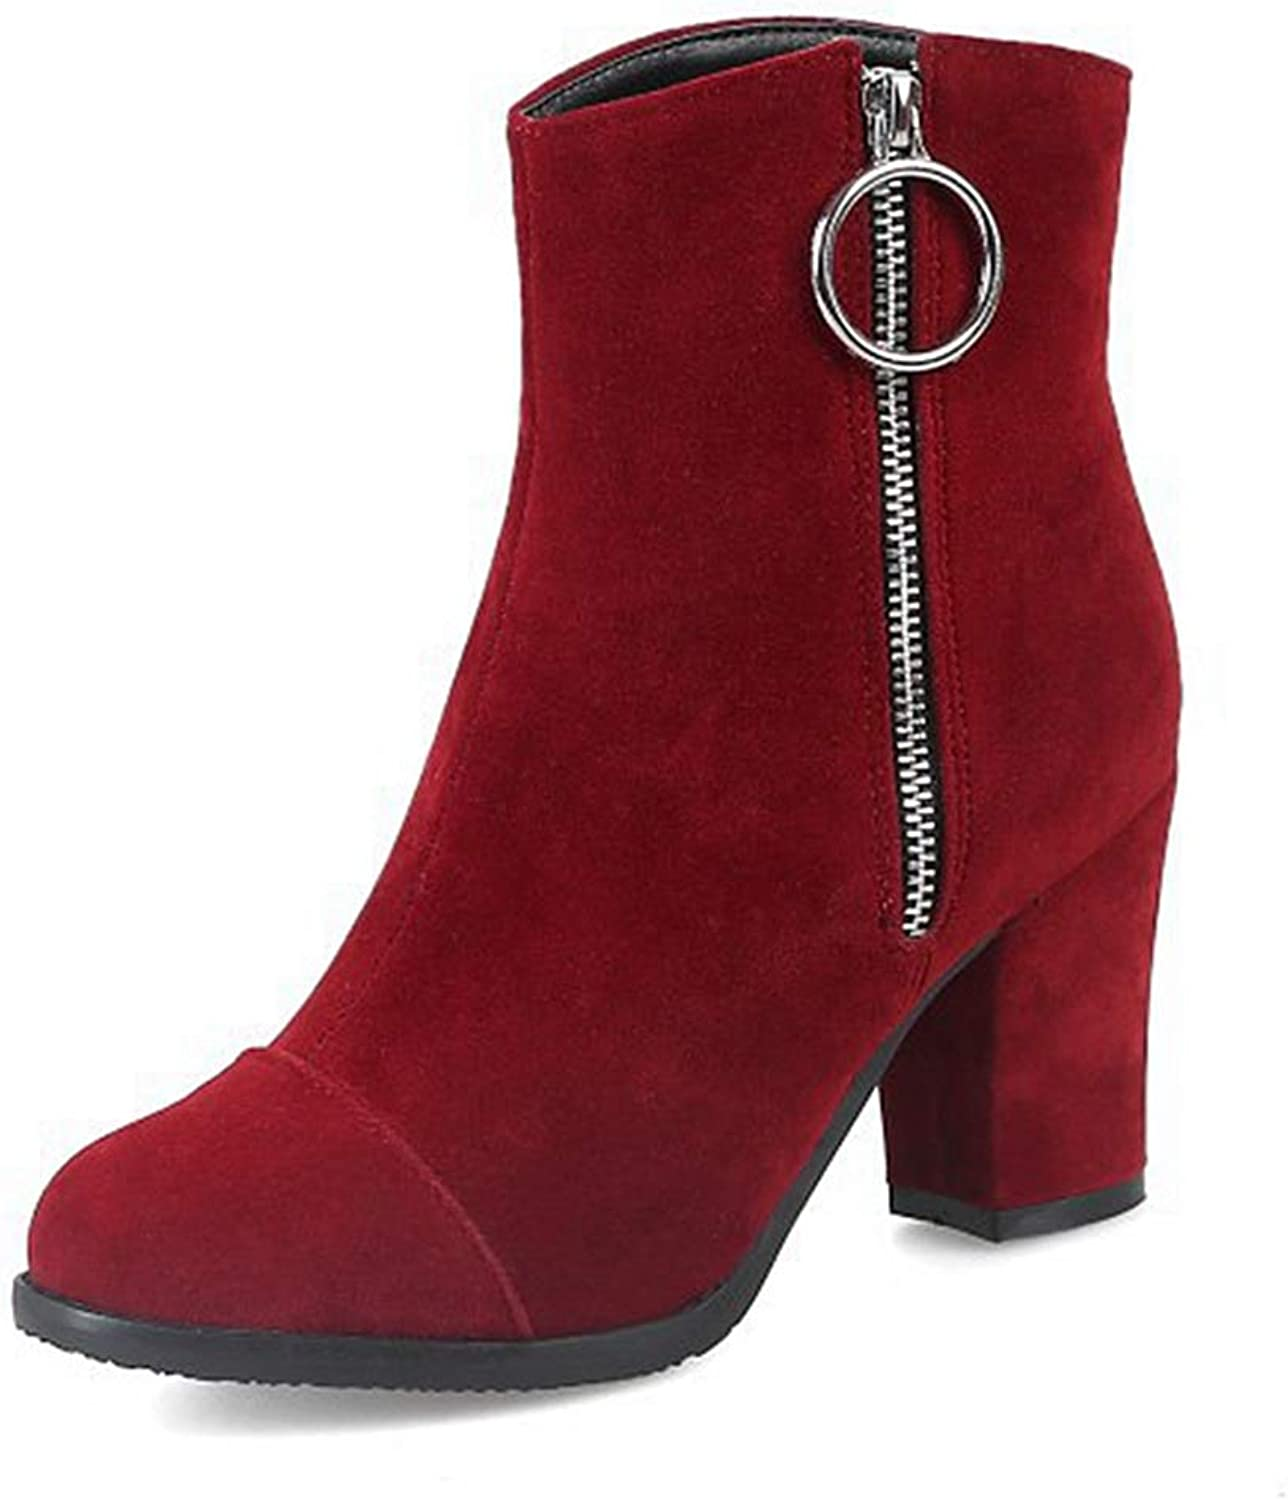 GIY Women's Closed Toe Dressy Ankle Boots Side Zipper Retro Chunky Block Heel Booties Short Boots